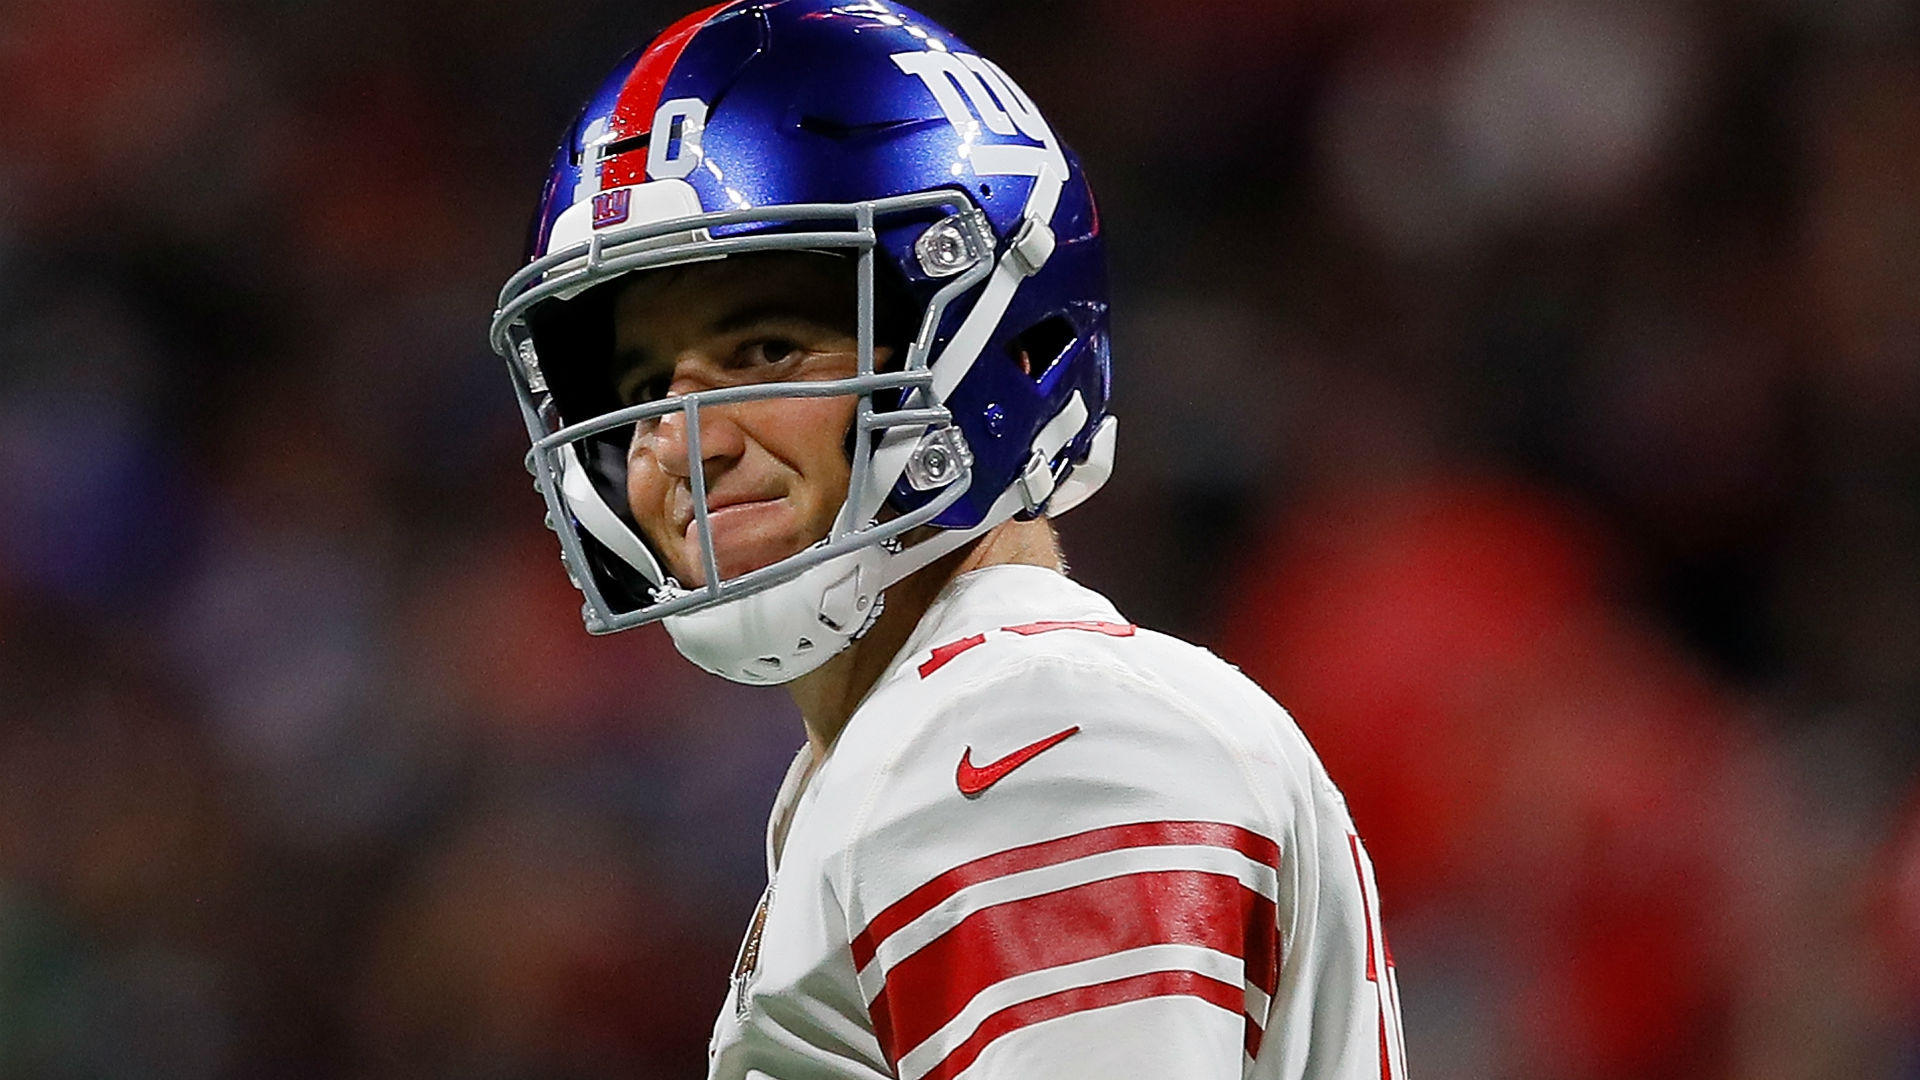 The New York Giants are keeping faith with Eli Manning for now and he is keen to repay the team with a win on Monday.